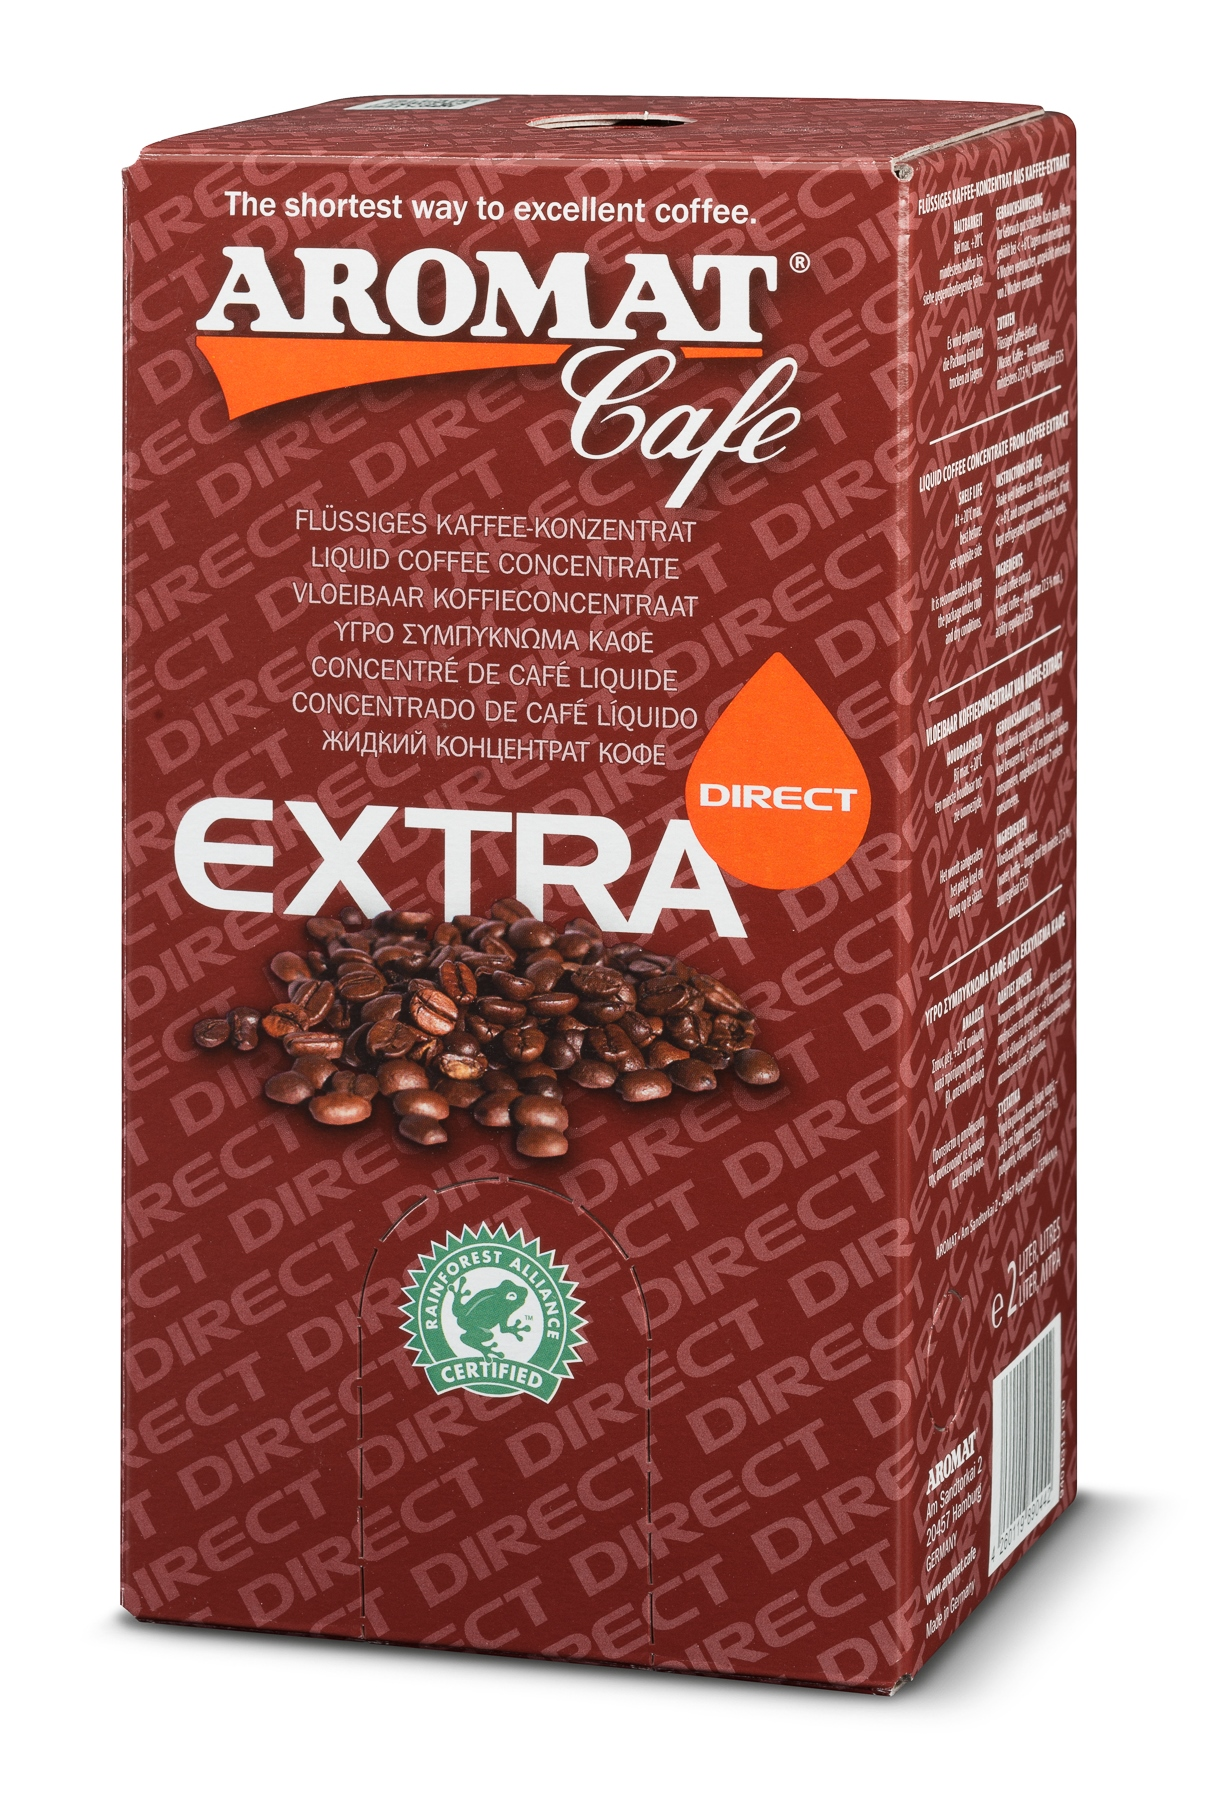 AROMAT Cafe EXTRA DIRECT